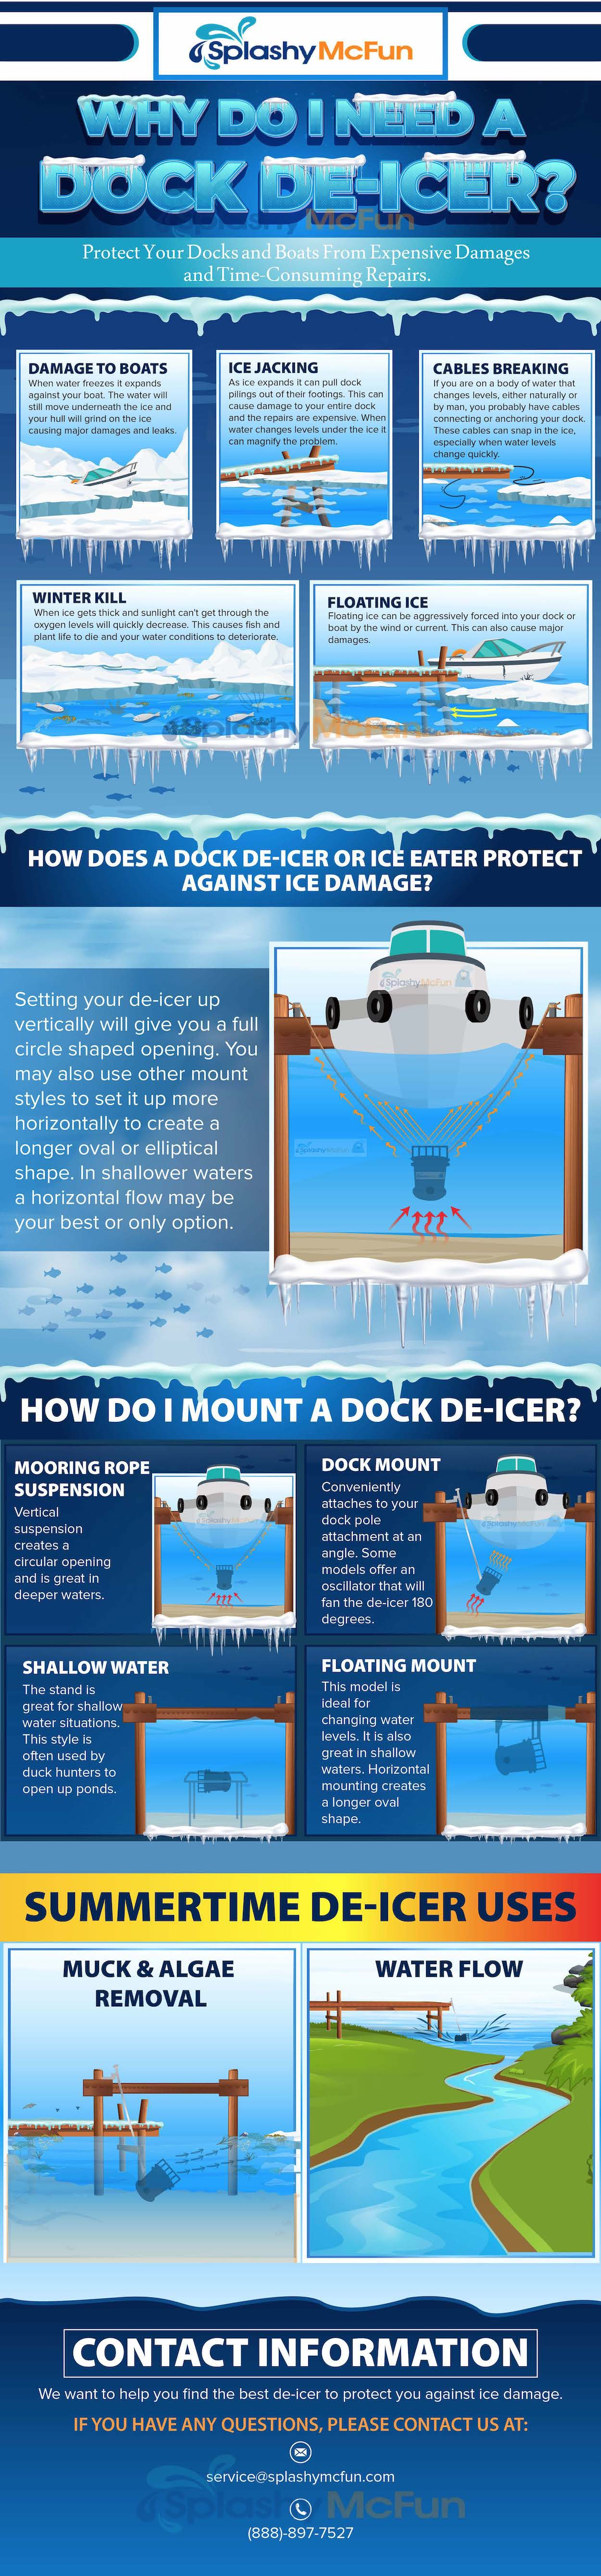 Dock De-Icers for Sale and Ice Eaters for Sale Information Guide